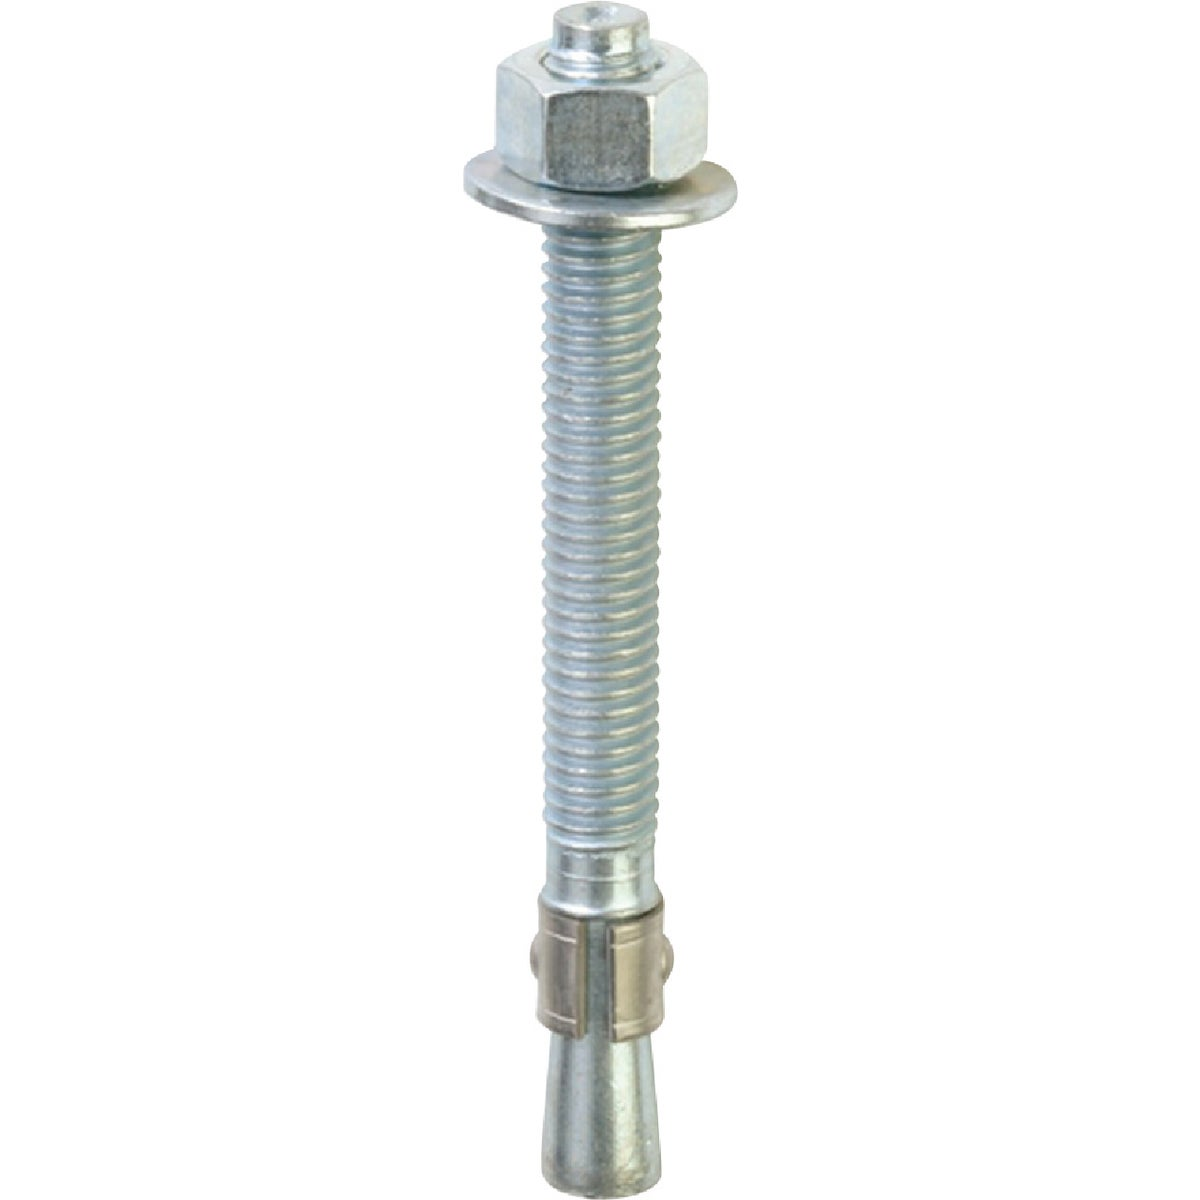 1PC 3/8X5 WEDGE ANCHOR - 50094 by Itw Brands